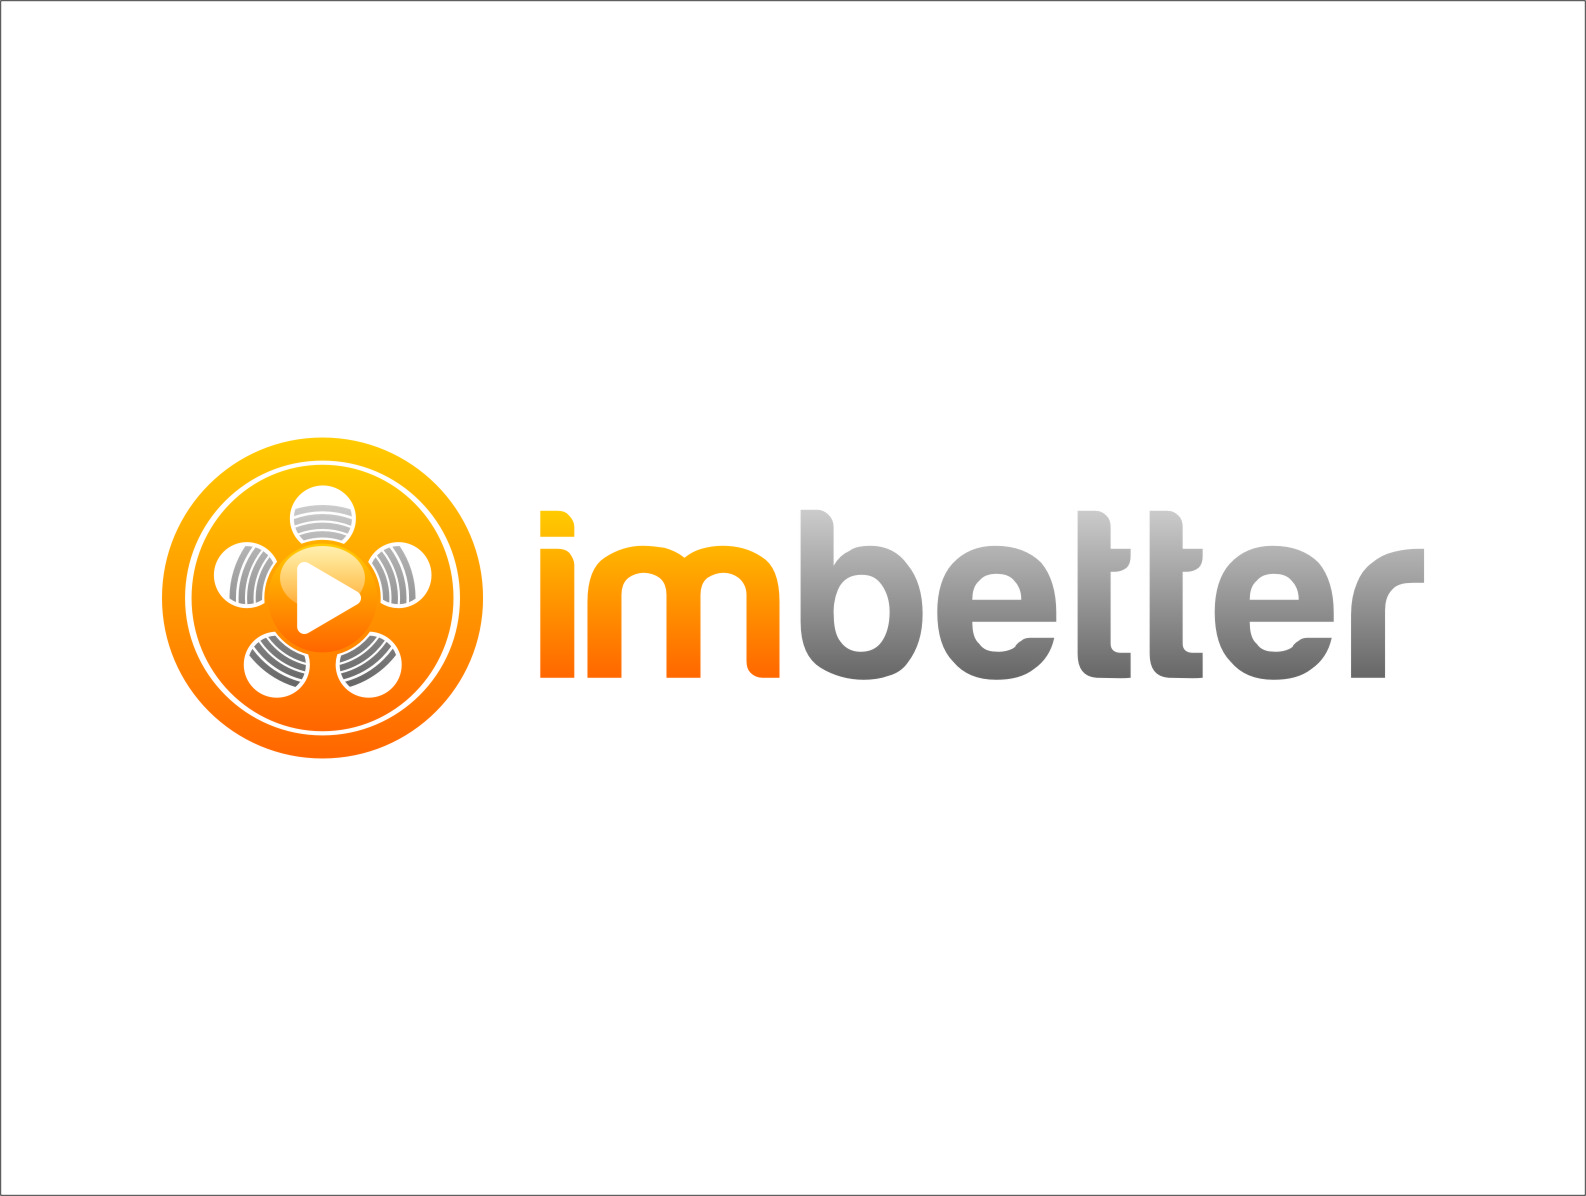 Logo Design by Ngepet_art - Entry No. 155 in the Logo Design Contest Imaginative Logo Design for imbetter.